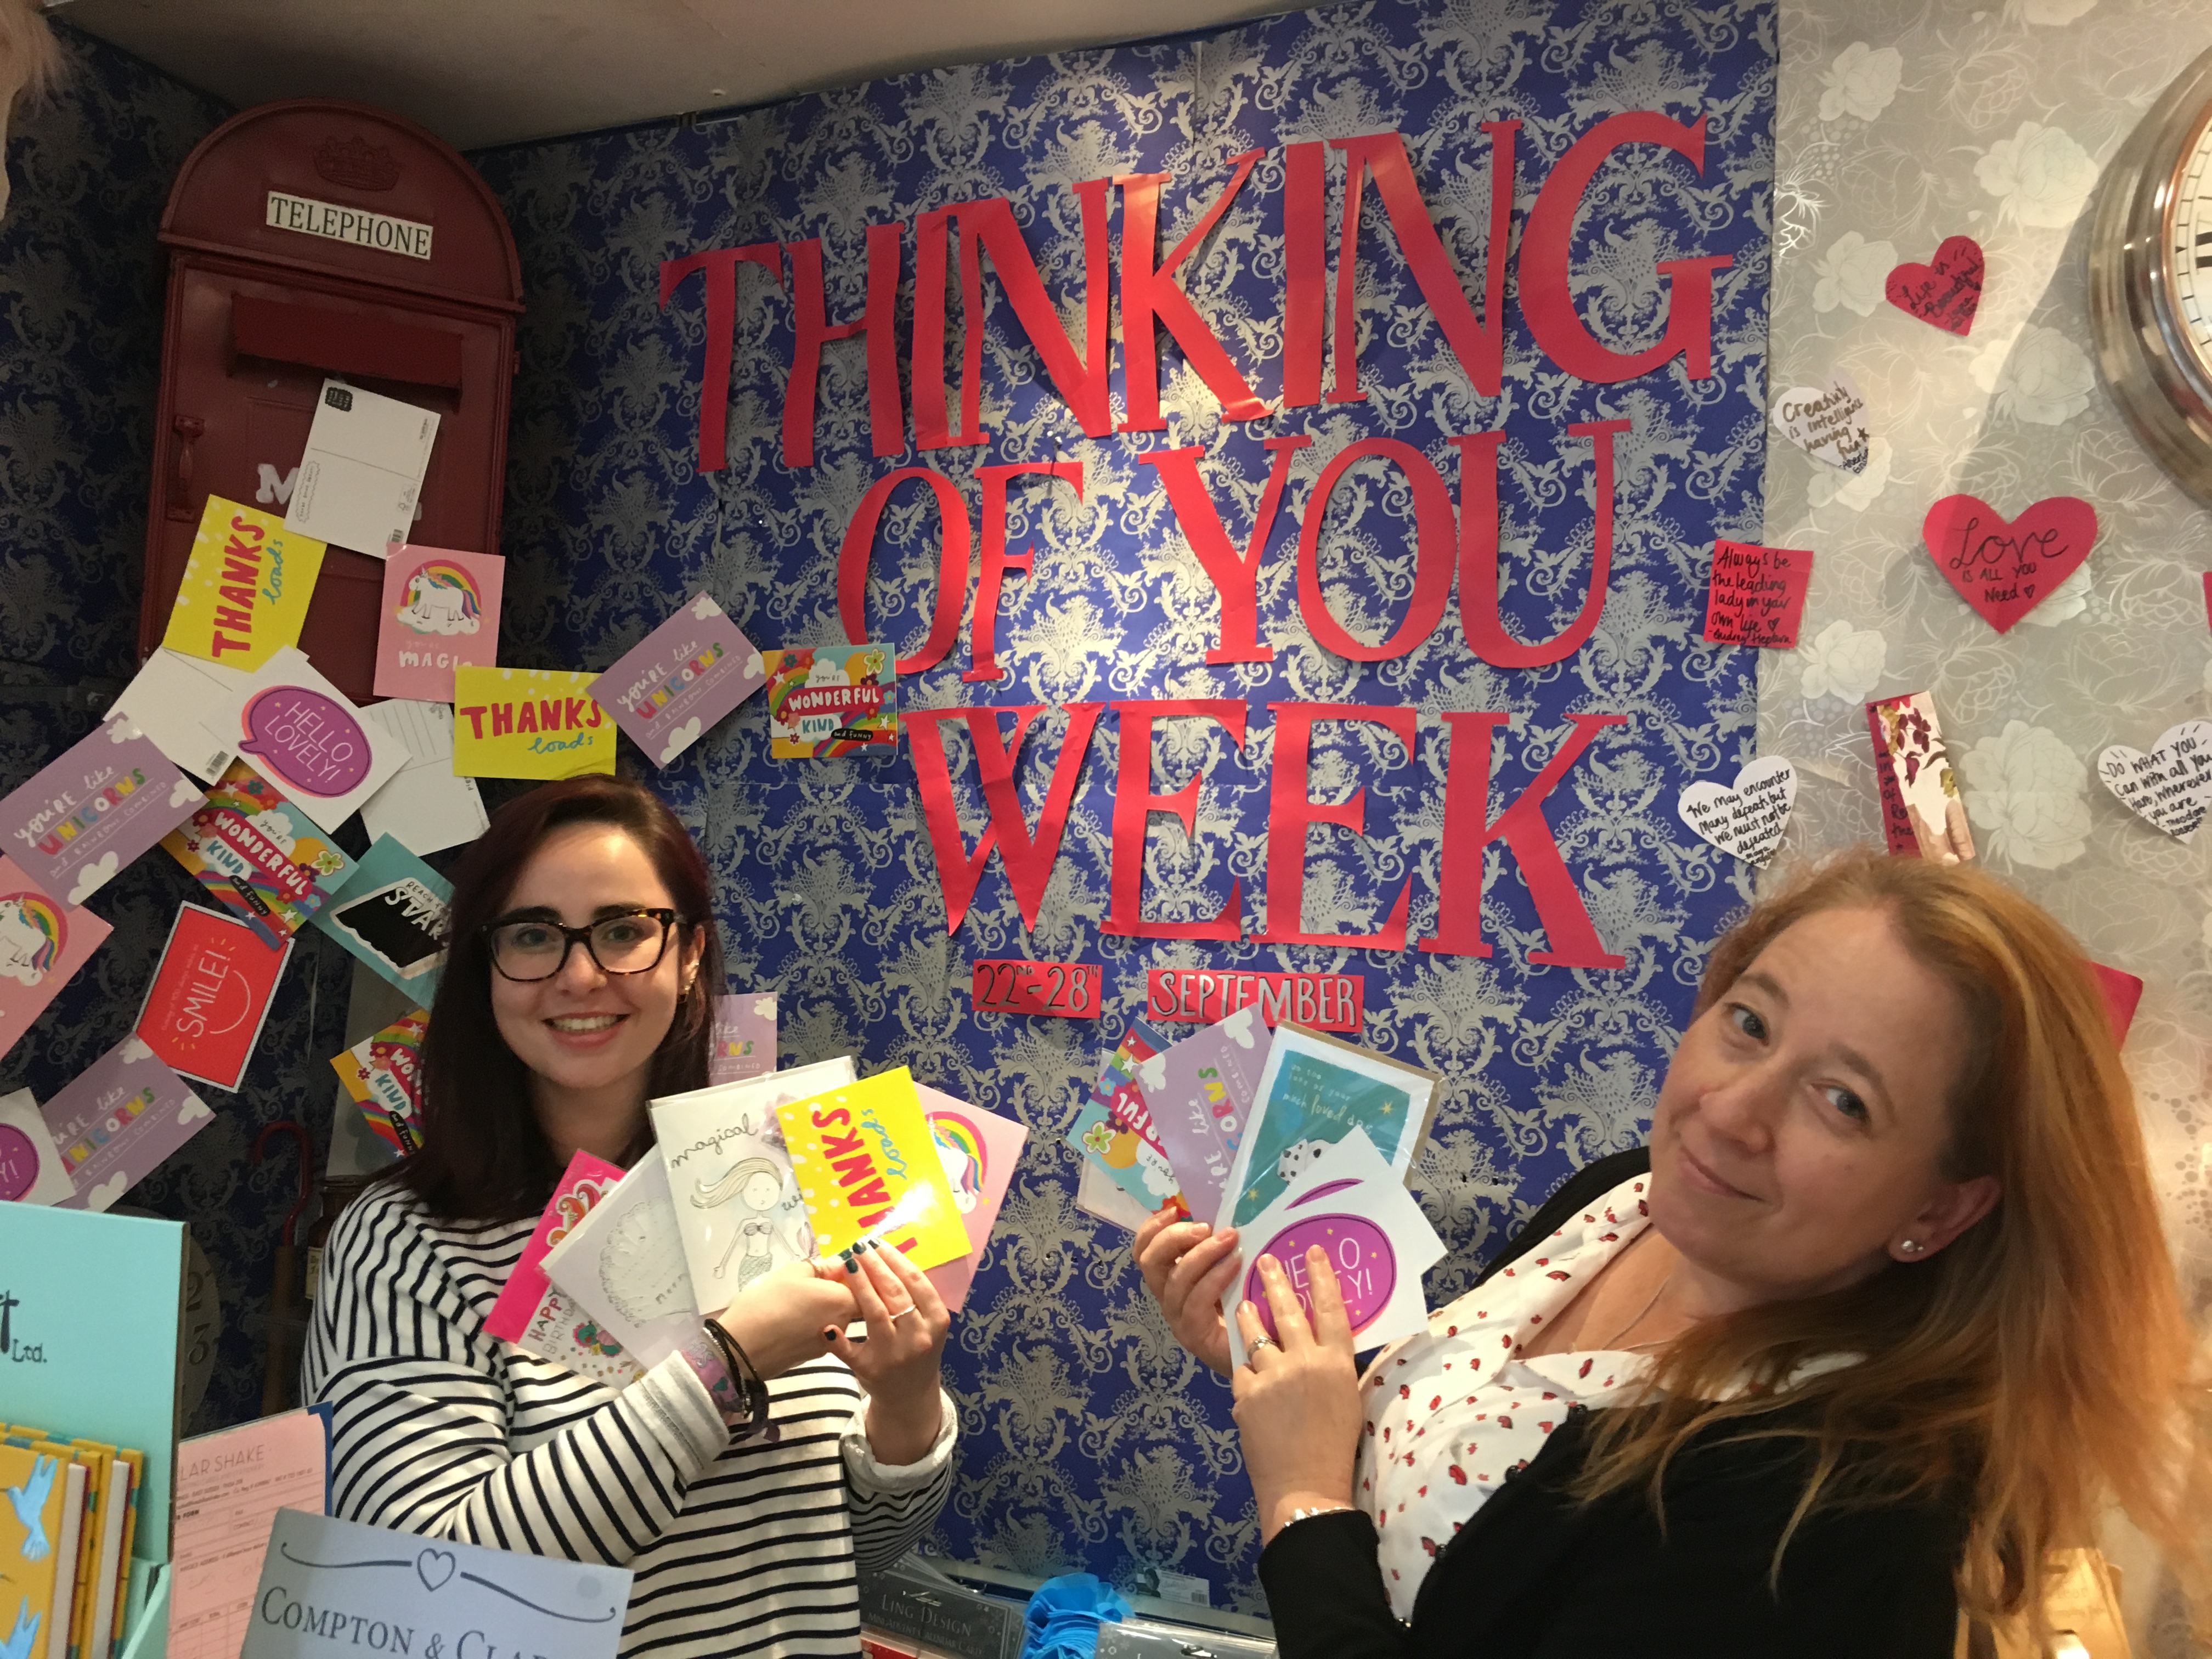 Above: Box of Delights' Olivia Ellingham, daughter of Michelle (right) and Lucy Marshall, near theThinking of You Week feature instore which saw Happy Jackson and The Happy News postcards (produced by Pigment) sold for 50p, with the proceeds going to Mind, the mental health charity.